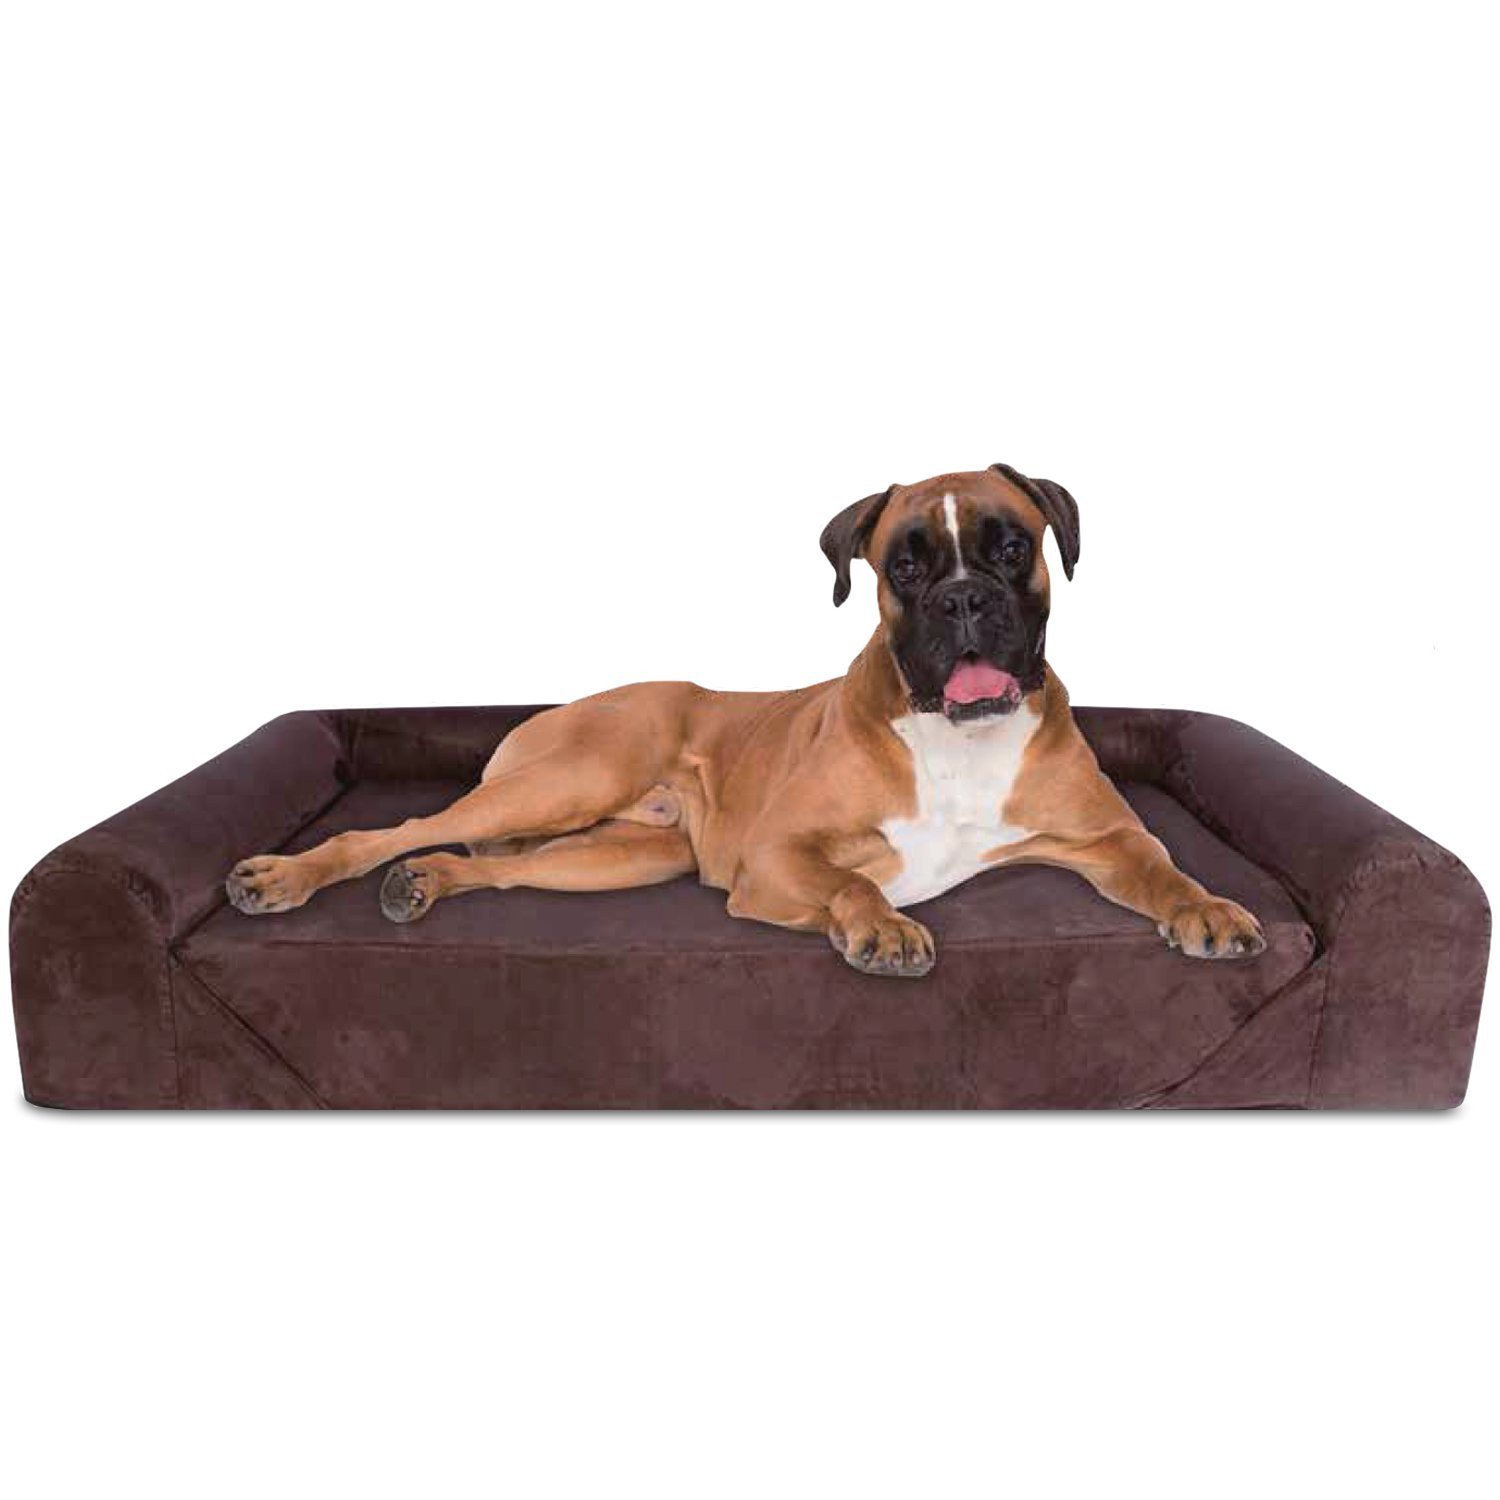 KOPEKS 6-inchThick High Grade Orthopedic Memory Foam Sofa Dog Bed Easy to Wash Removable Cover with Anti-Slip Bottom. Free Waterproof Liner Included - Jumbo XL 56'' X 40'' for Large Dogs - Brown by KOPEKS